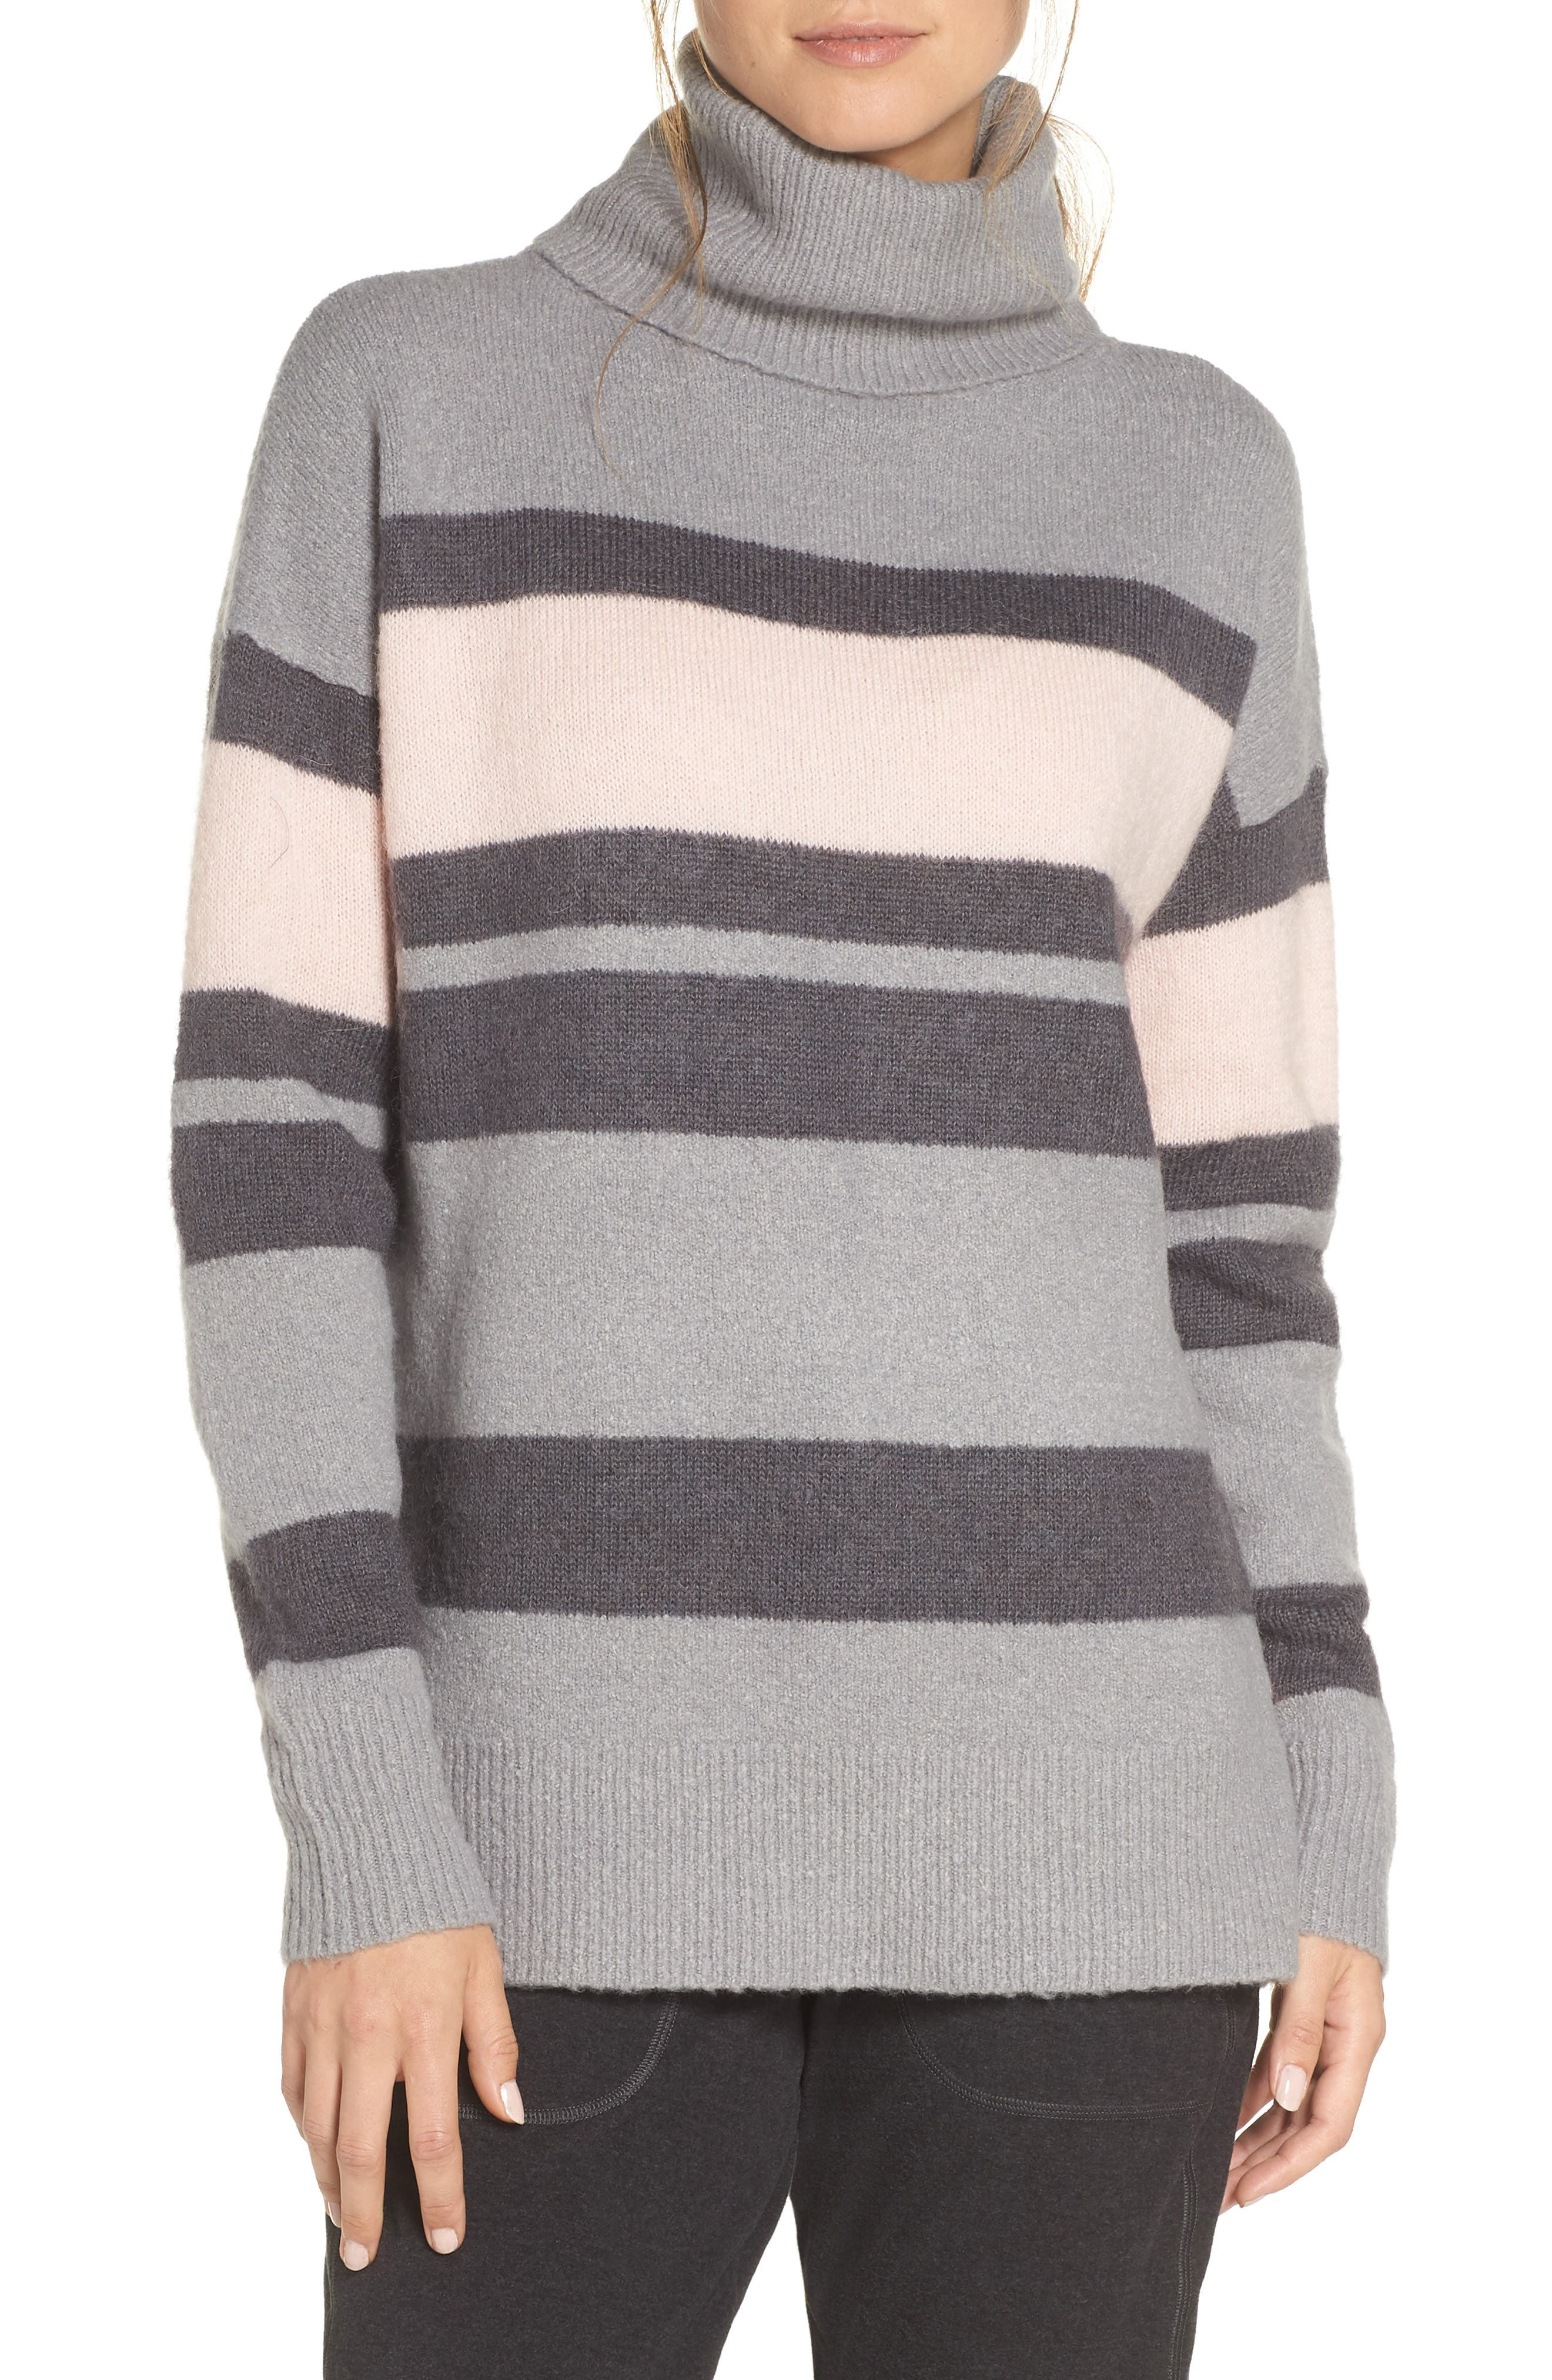 SWEATY BETTY Bloomsbury Sweater, Main, color, 023